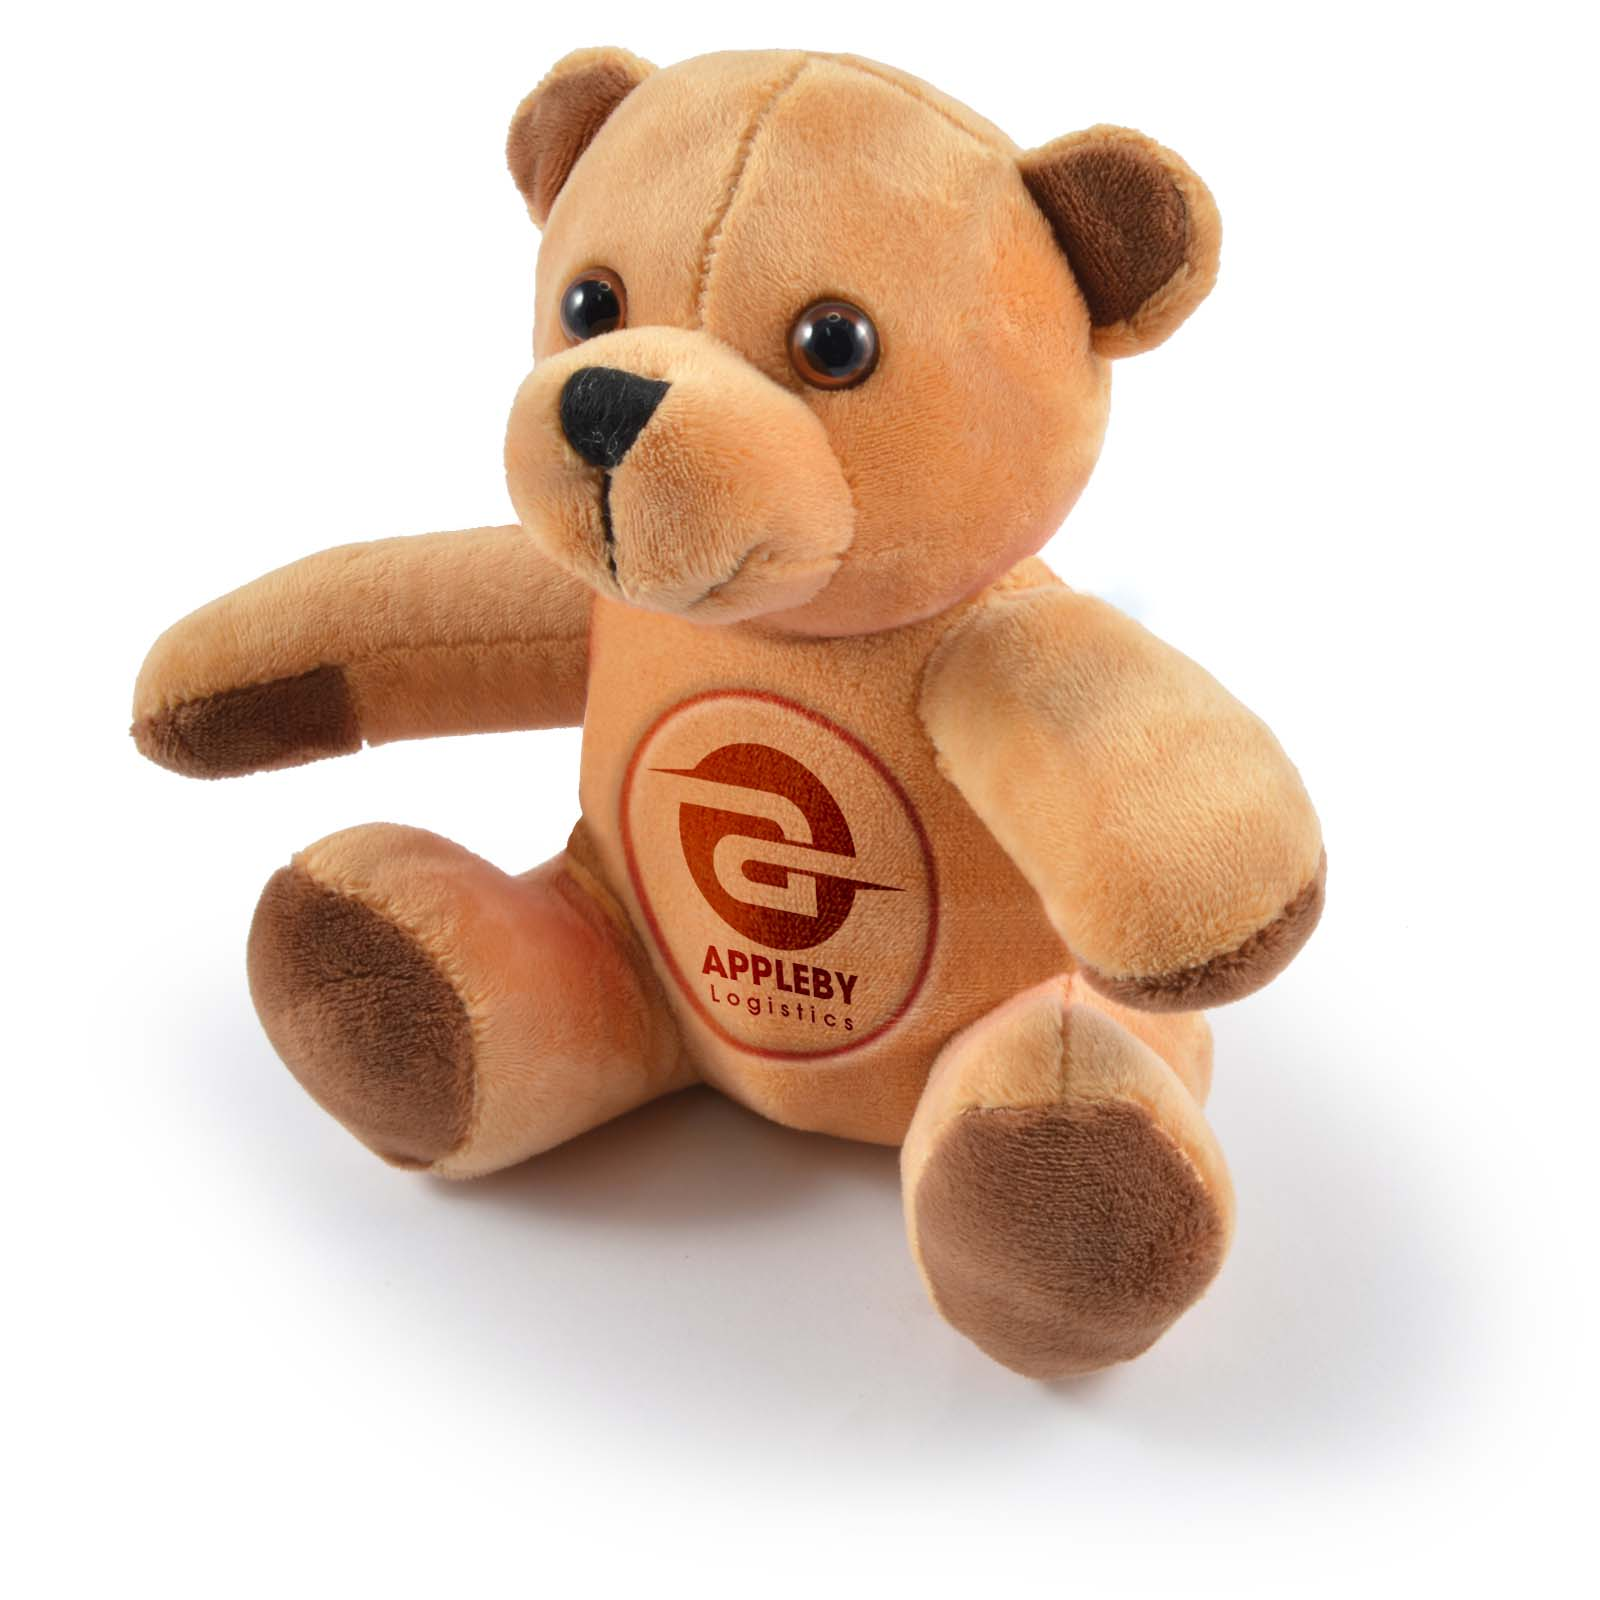 Honey Plush Teddy Bear - Includes embroidered logo, From $5.79